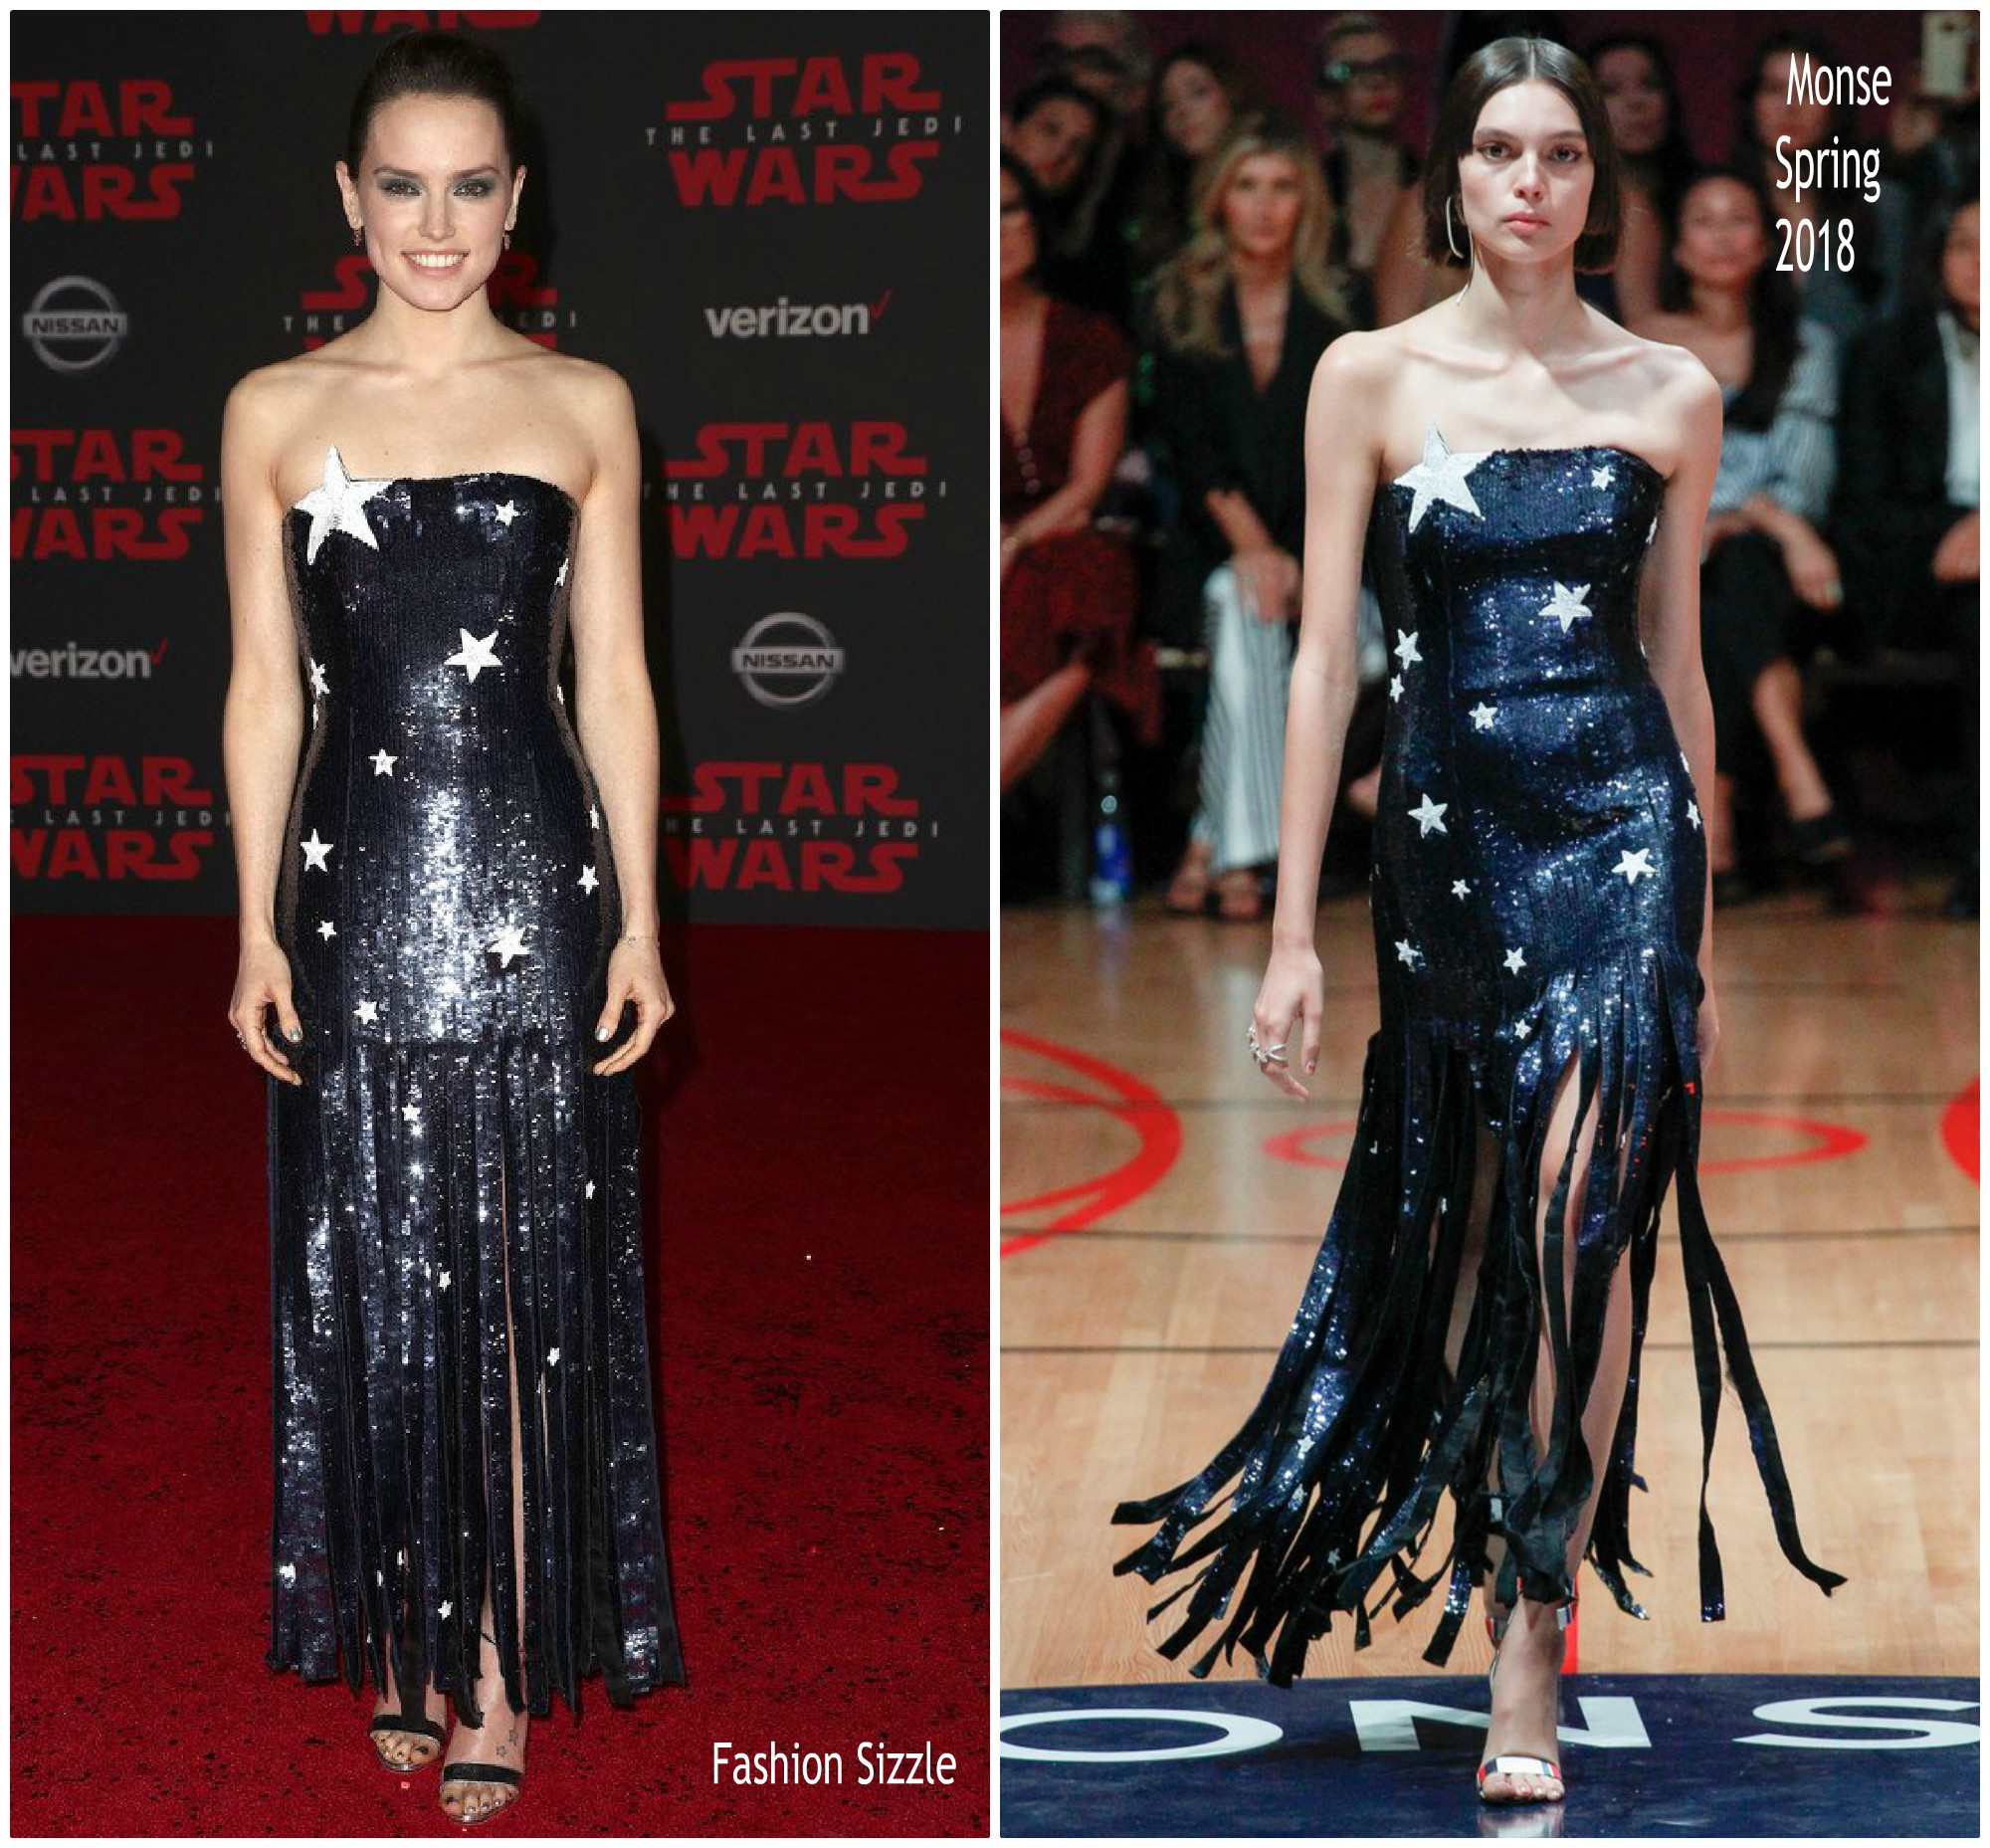 daisy-ridley-in-monse-star-wars-the-last-jedi-la-premiere